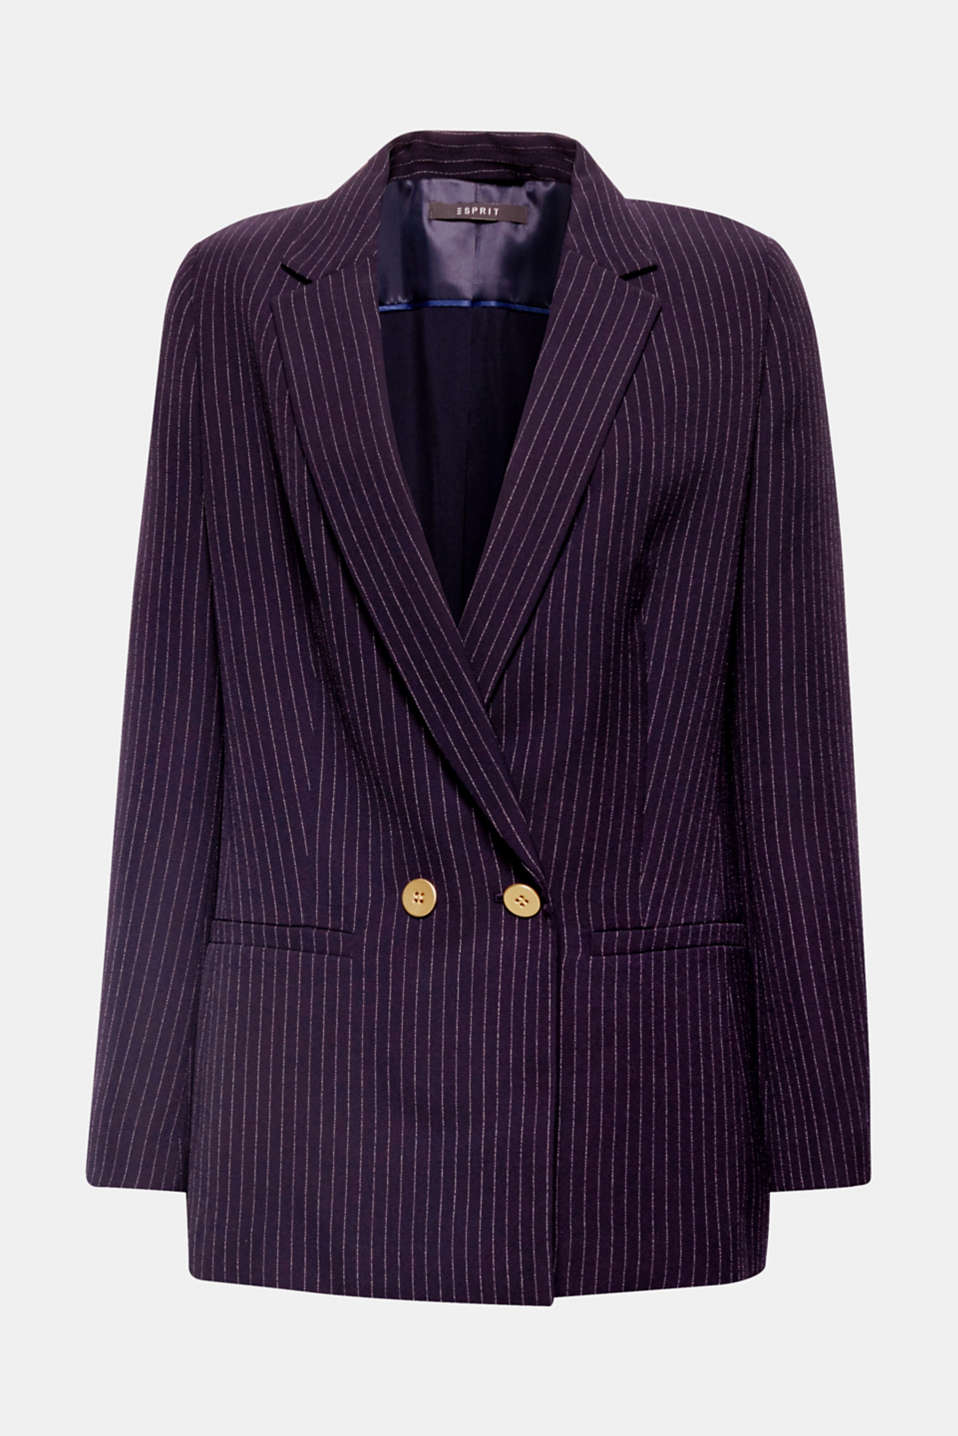 This loose-fitting pinstripe blazer in crease-resistant fabric with a modern button solution is perfect for work, business or travel.